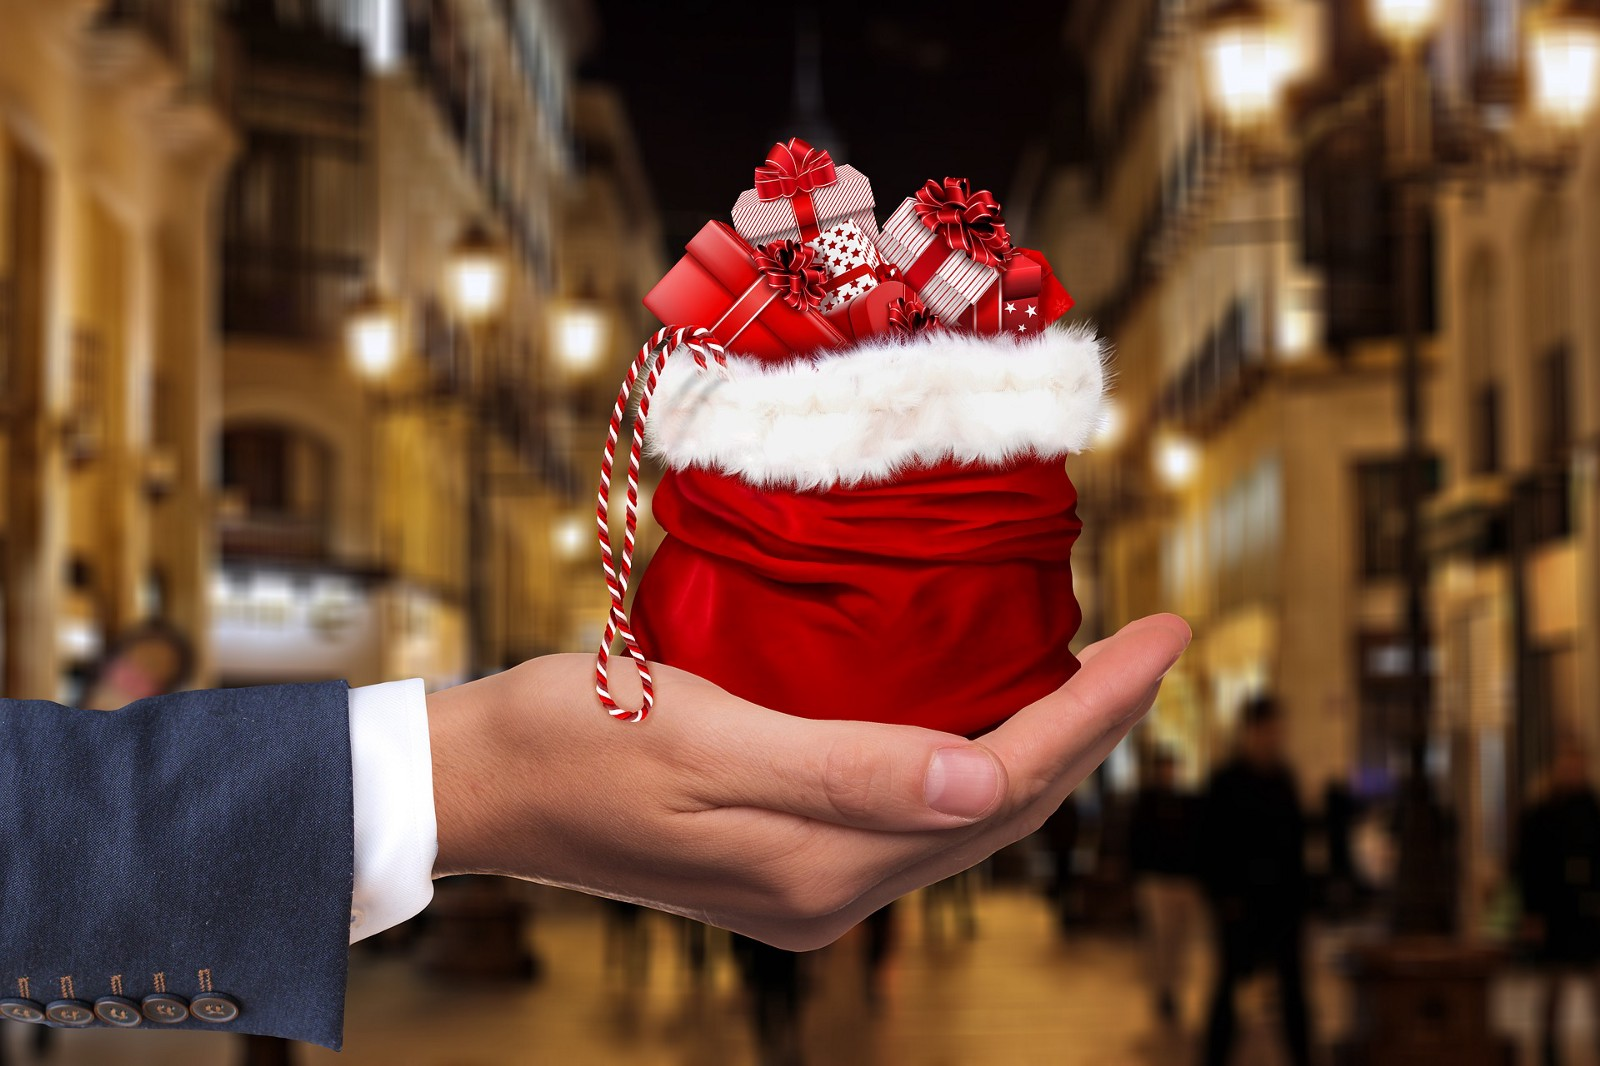 christmas in july is coming to main street mullica hill from july 26 to 28 hours are 11 am to 5 pm on thursday and friday and 11 am to 7 pm on - 7 11 Christmas Hours